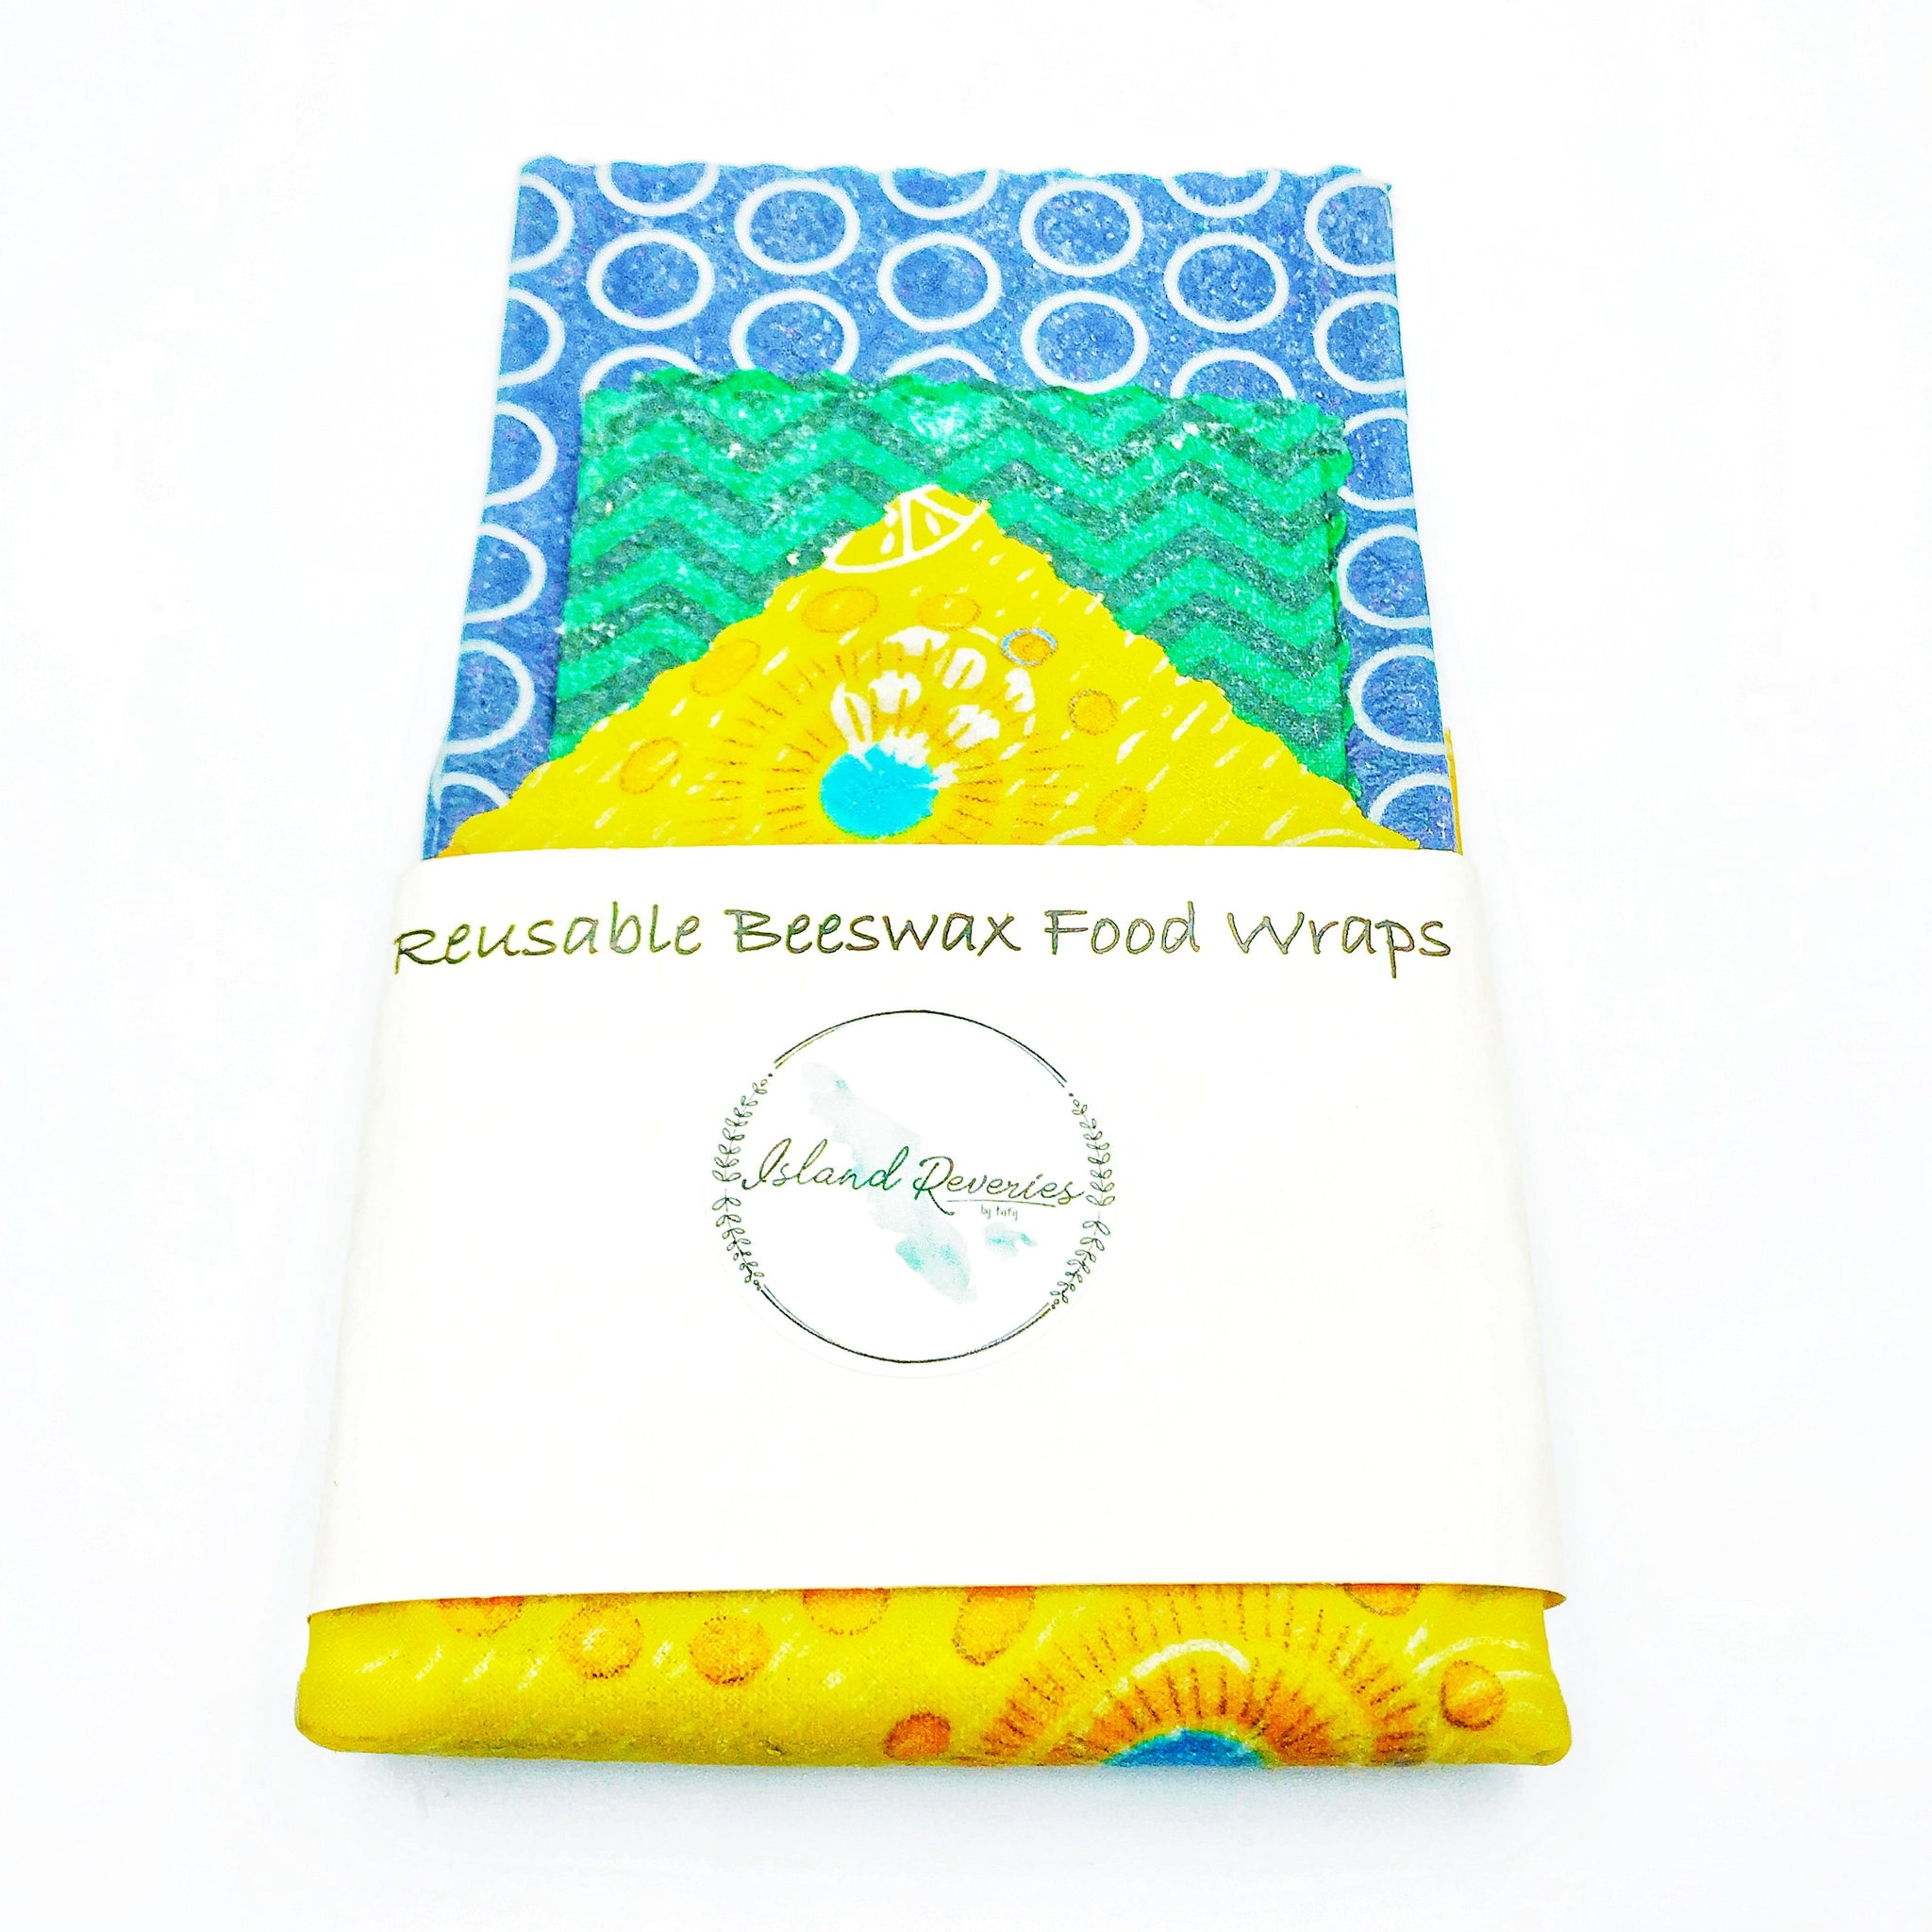 Island Reveries Reusable Beeswax Food Wraps, Blue, Green, Yellow